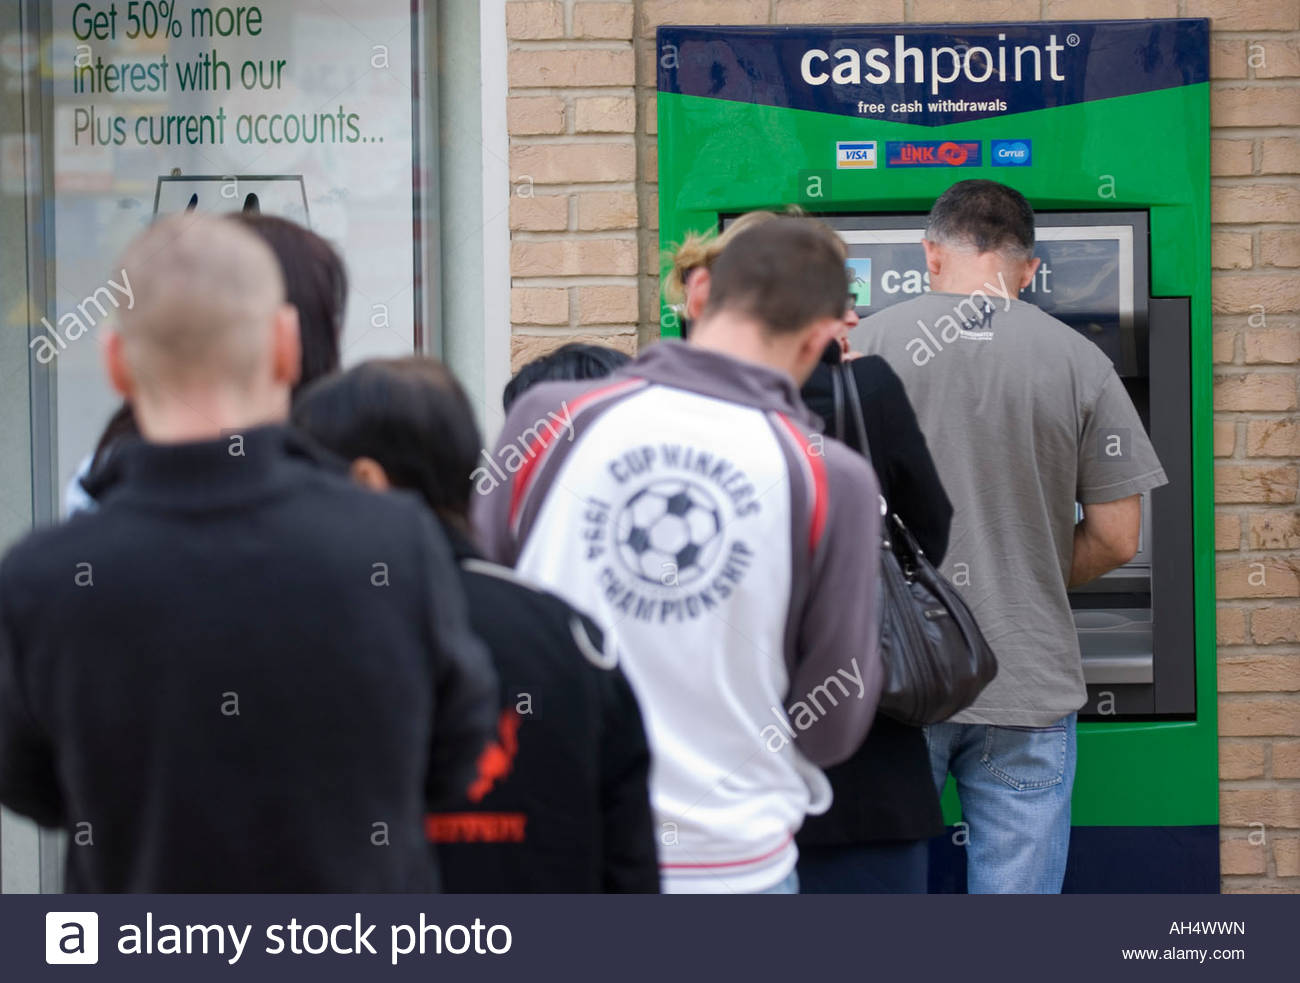 migrant workers queueing up to withdraw their wages from a cashpoint machine in Thetford, Norfolk - Stock Image